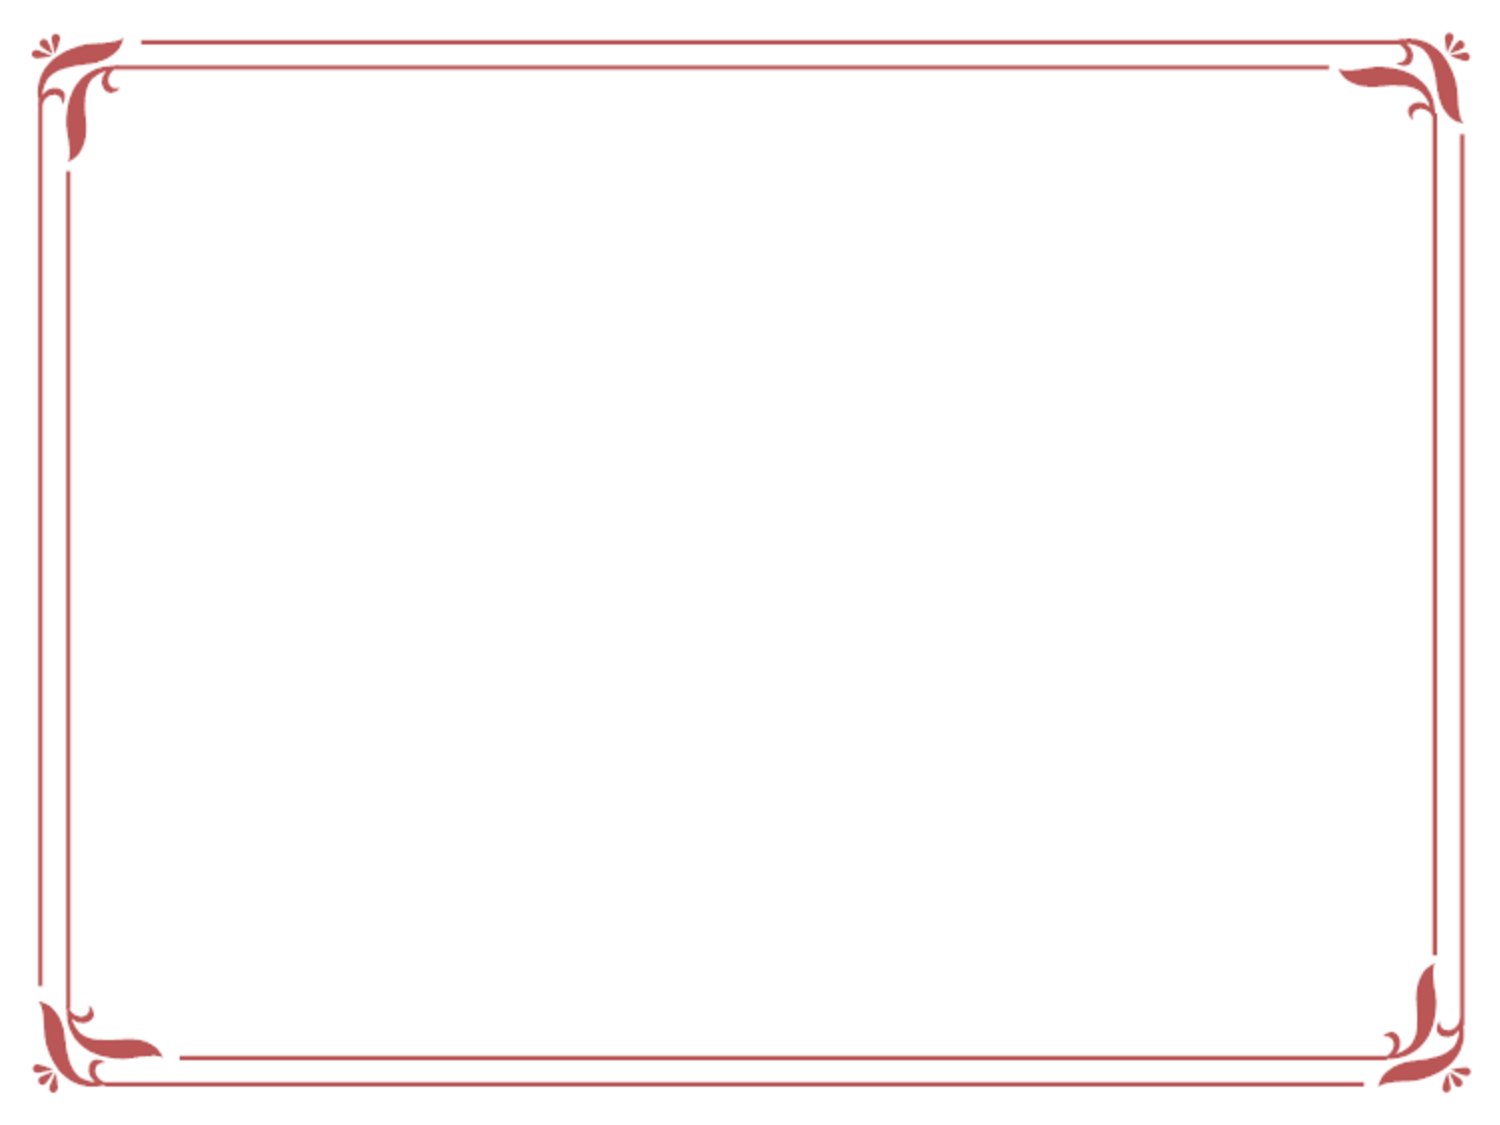 Simple Red Certificate Border.